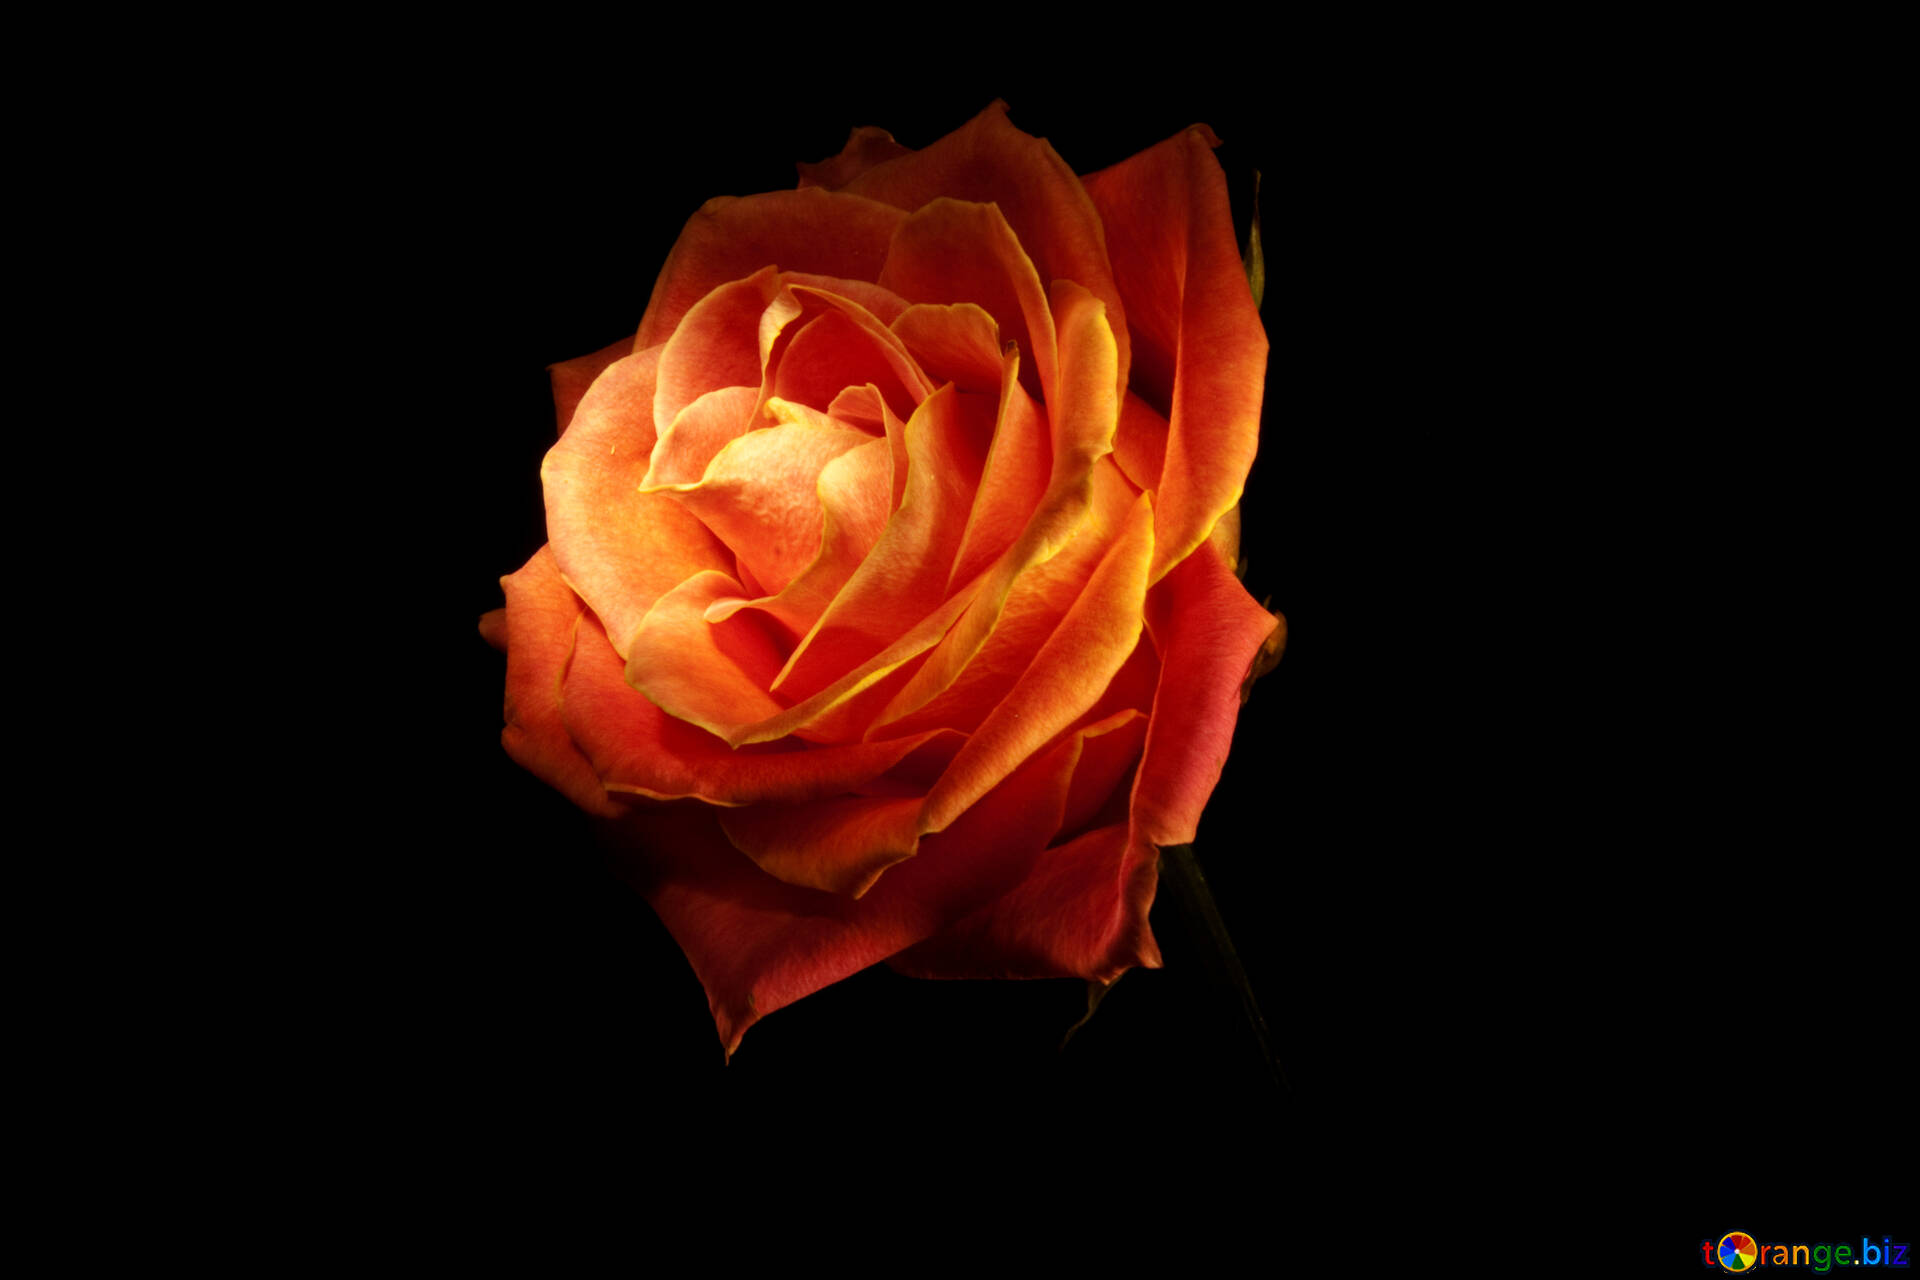 Flowers Roses Isolated Fire Rose Wallpaper For Desktop Rose